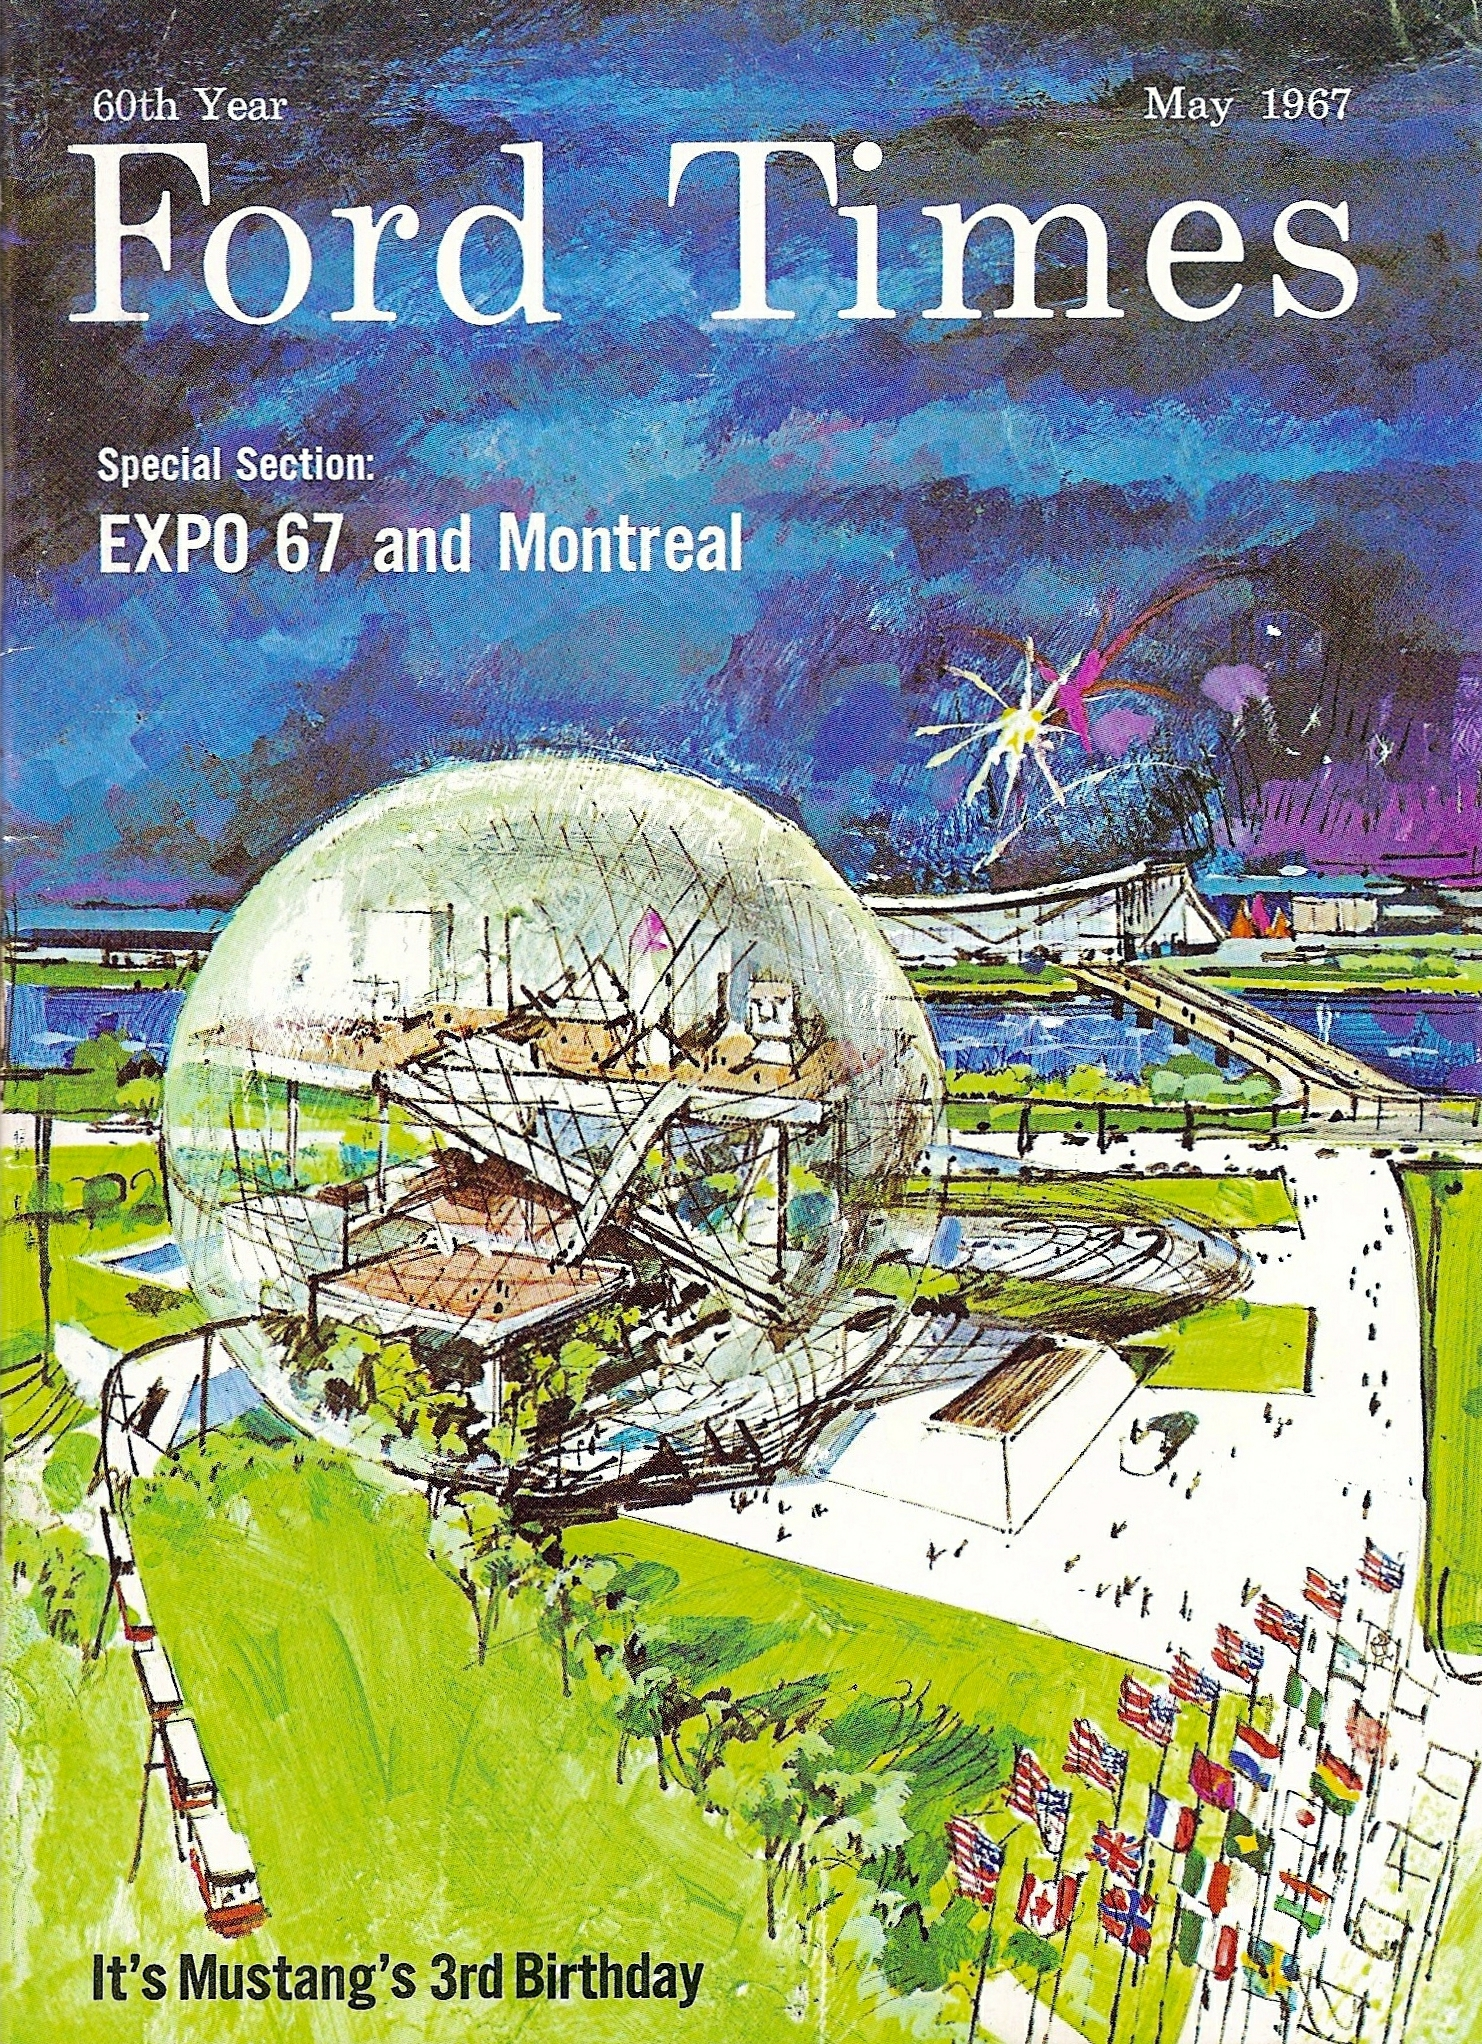 Montreals Expo 67 Ford Times cover May 1967 Ford Times background 1482x2044